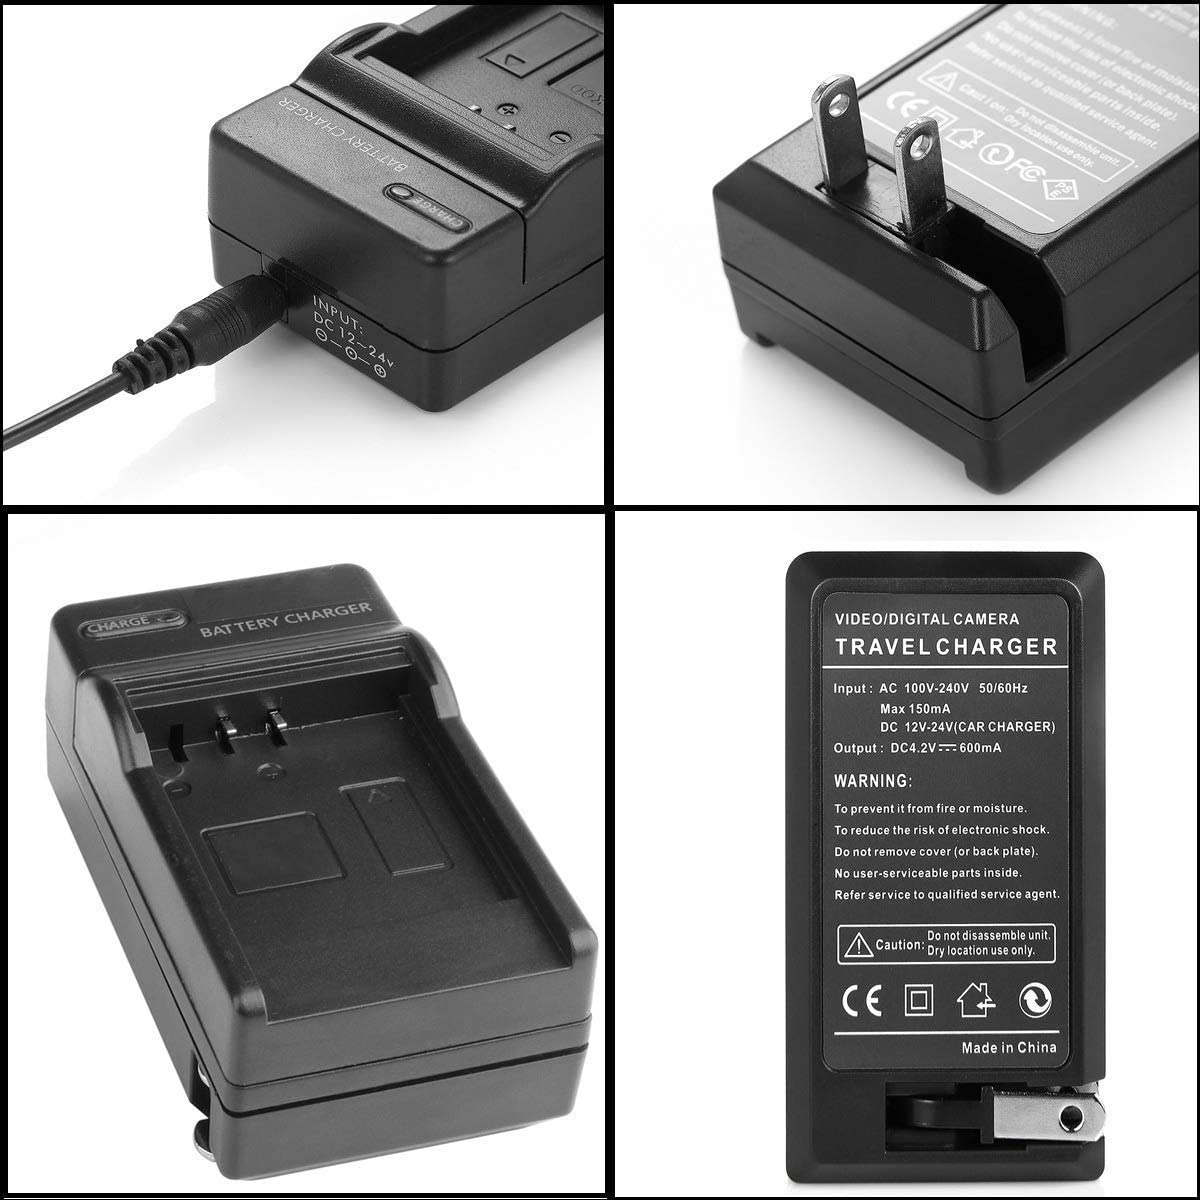 HDR-CX115E Micro USB Battery Charger for Sony HDR-CX106E HDR-CX155E Handycam Camcorder HDR-CX116E